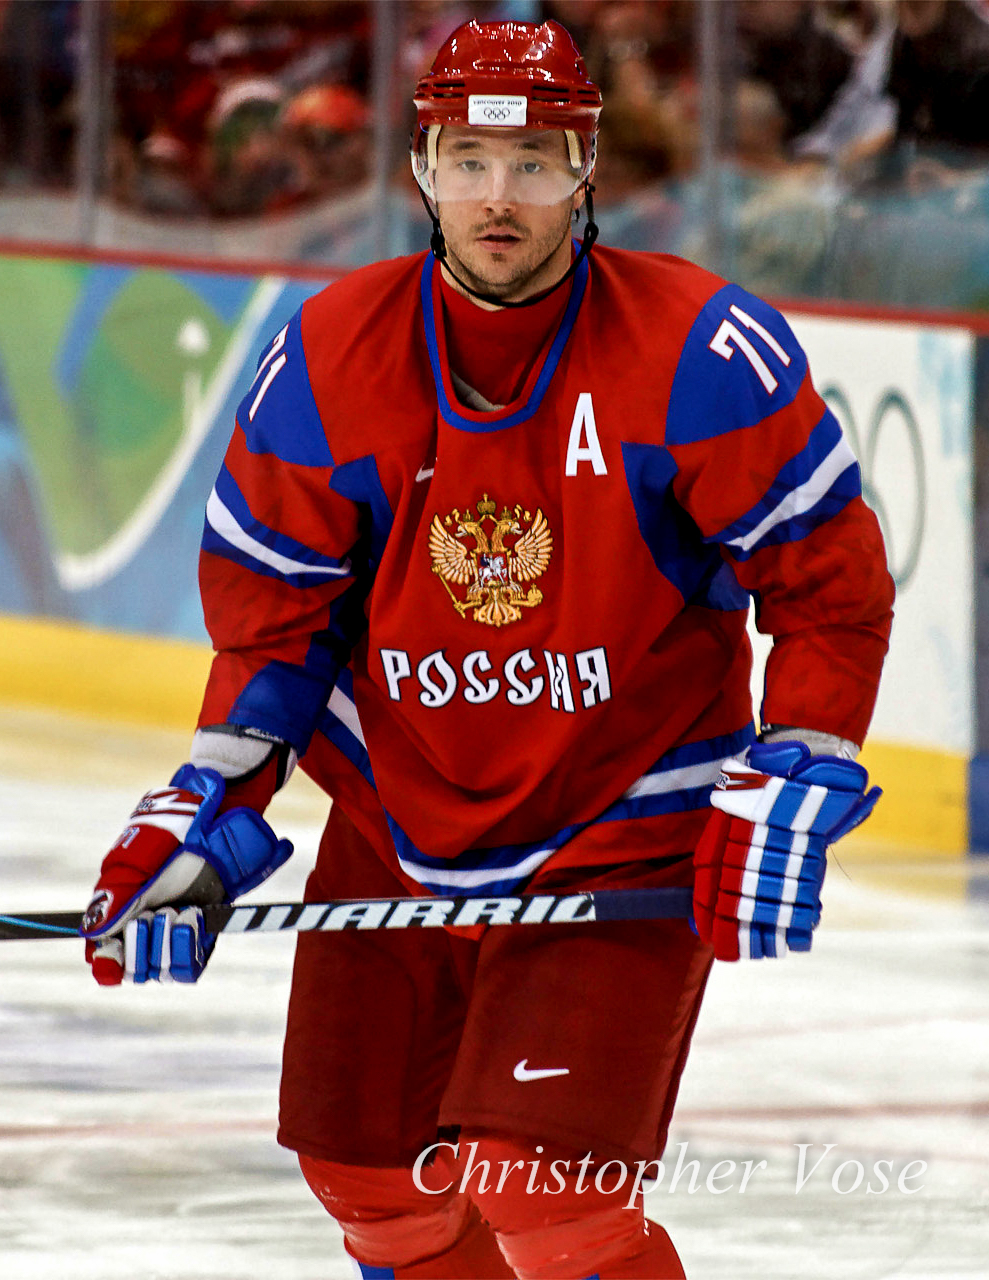 Ilya Kovalchuk at the 2010 Winter Olympics in Vancouver. Photo by S. Yume.